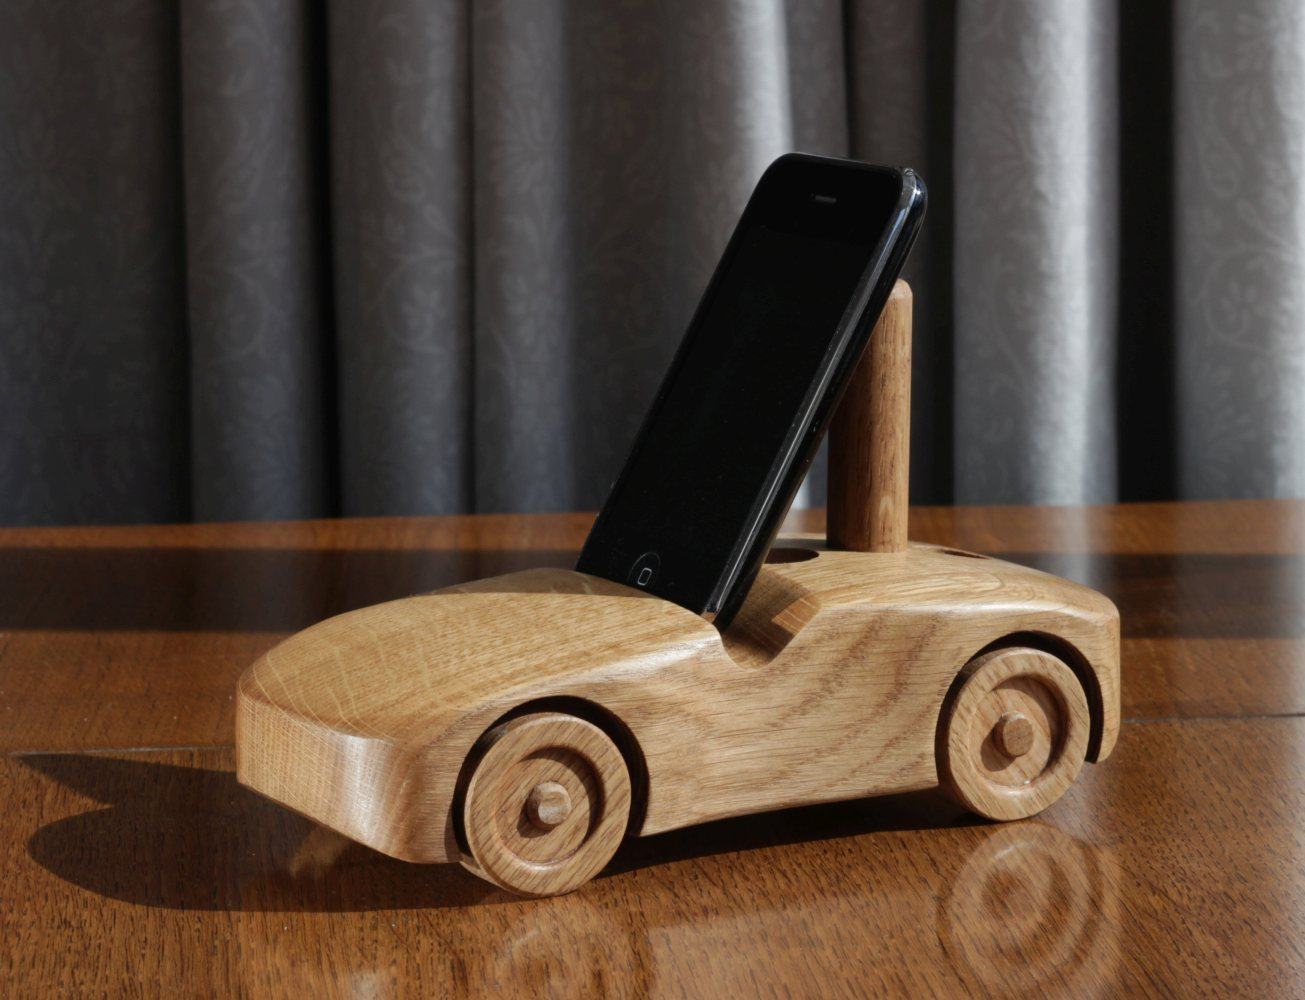 Leanii Gt1 Car Phone Stand